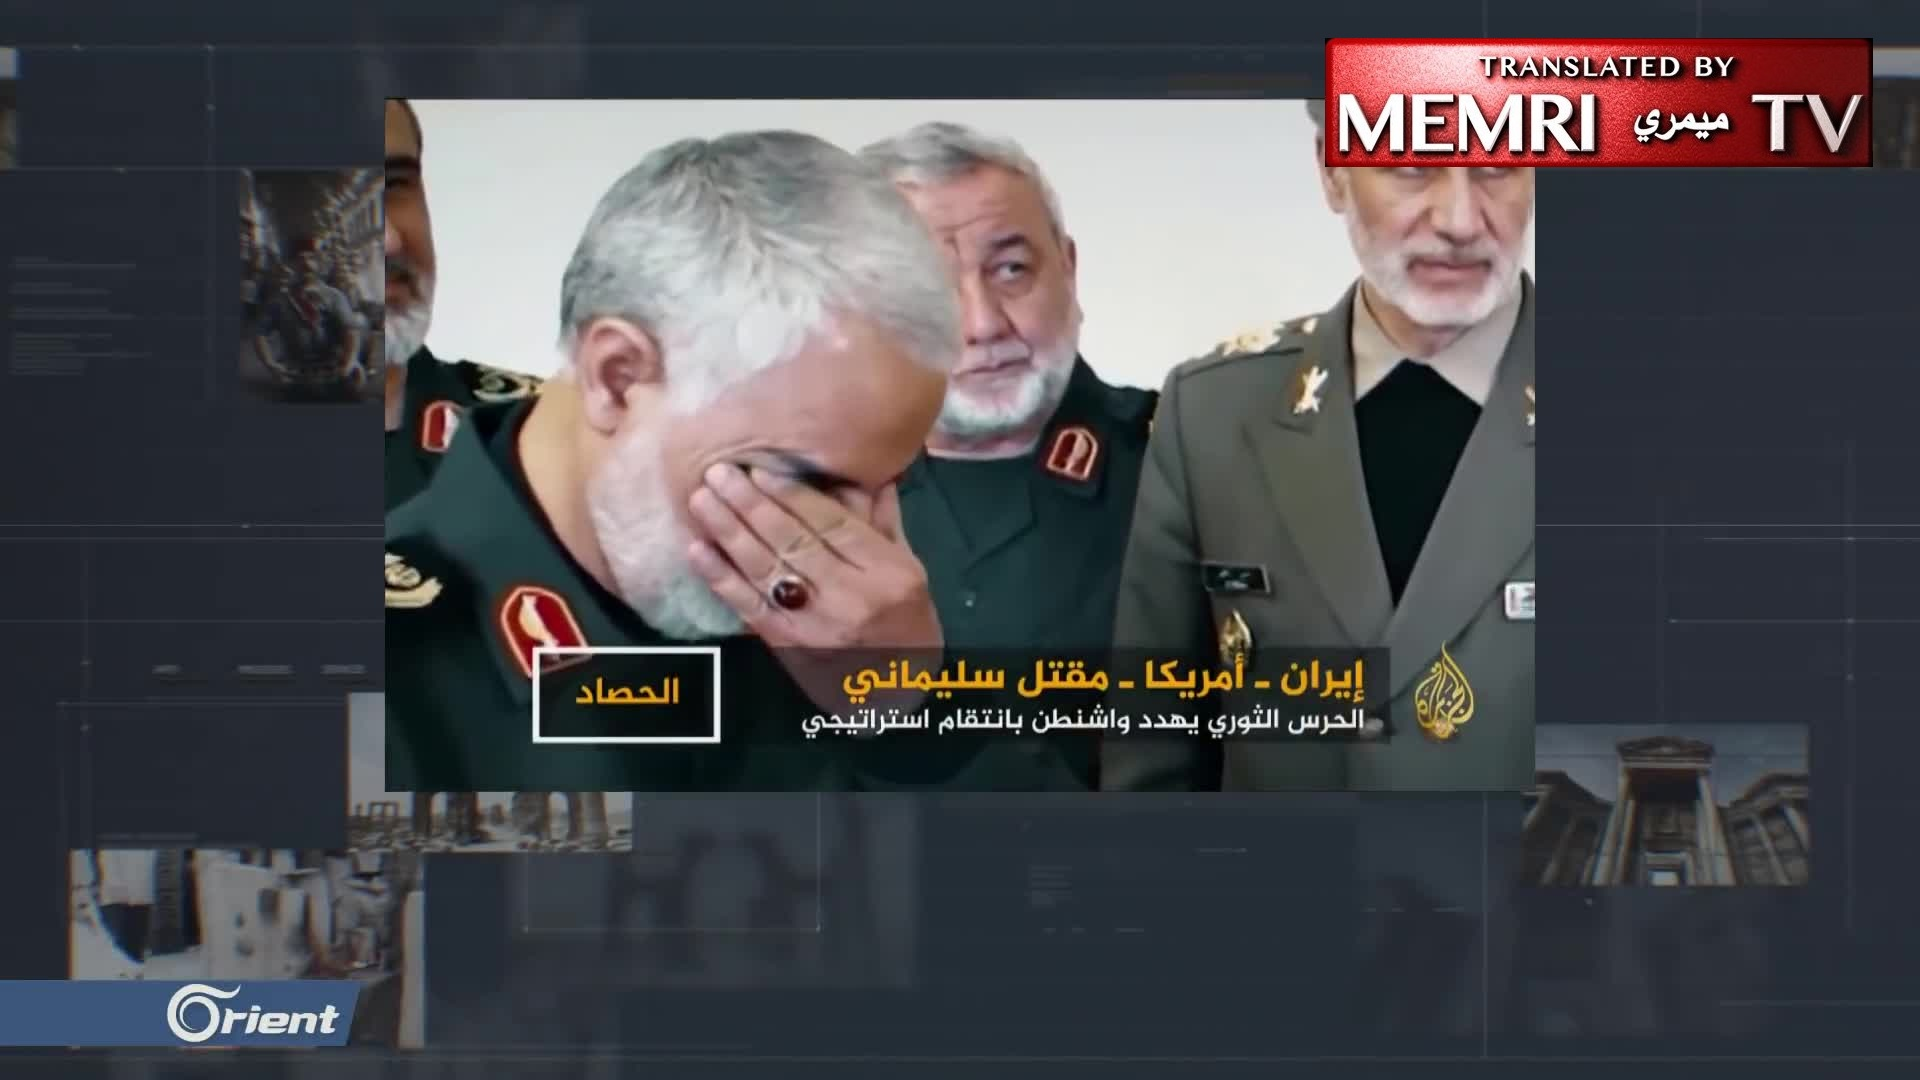 Syrian Opposition TV Channel Criticizes Al-Jazeera's Coverage of Soleimani Killing for Echoing Iranian Narrative, Ignoring Massacres Perpetrated by Iran in Iraq